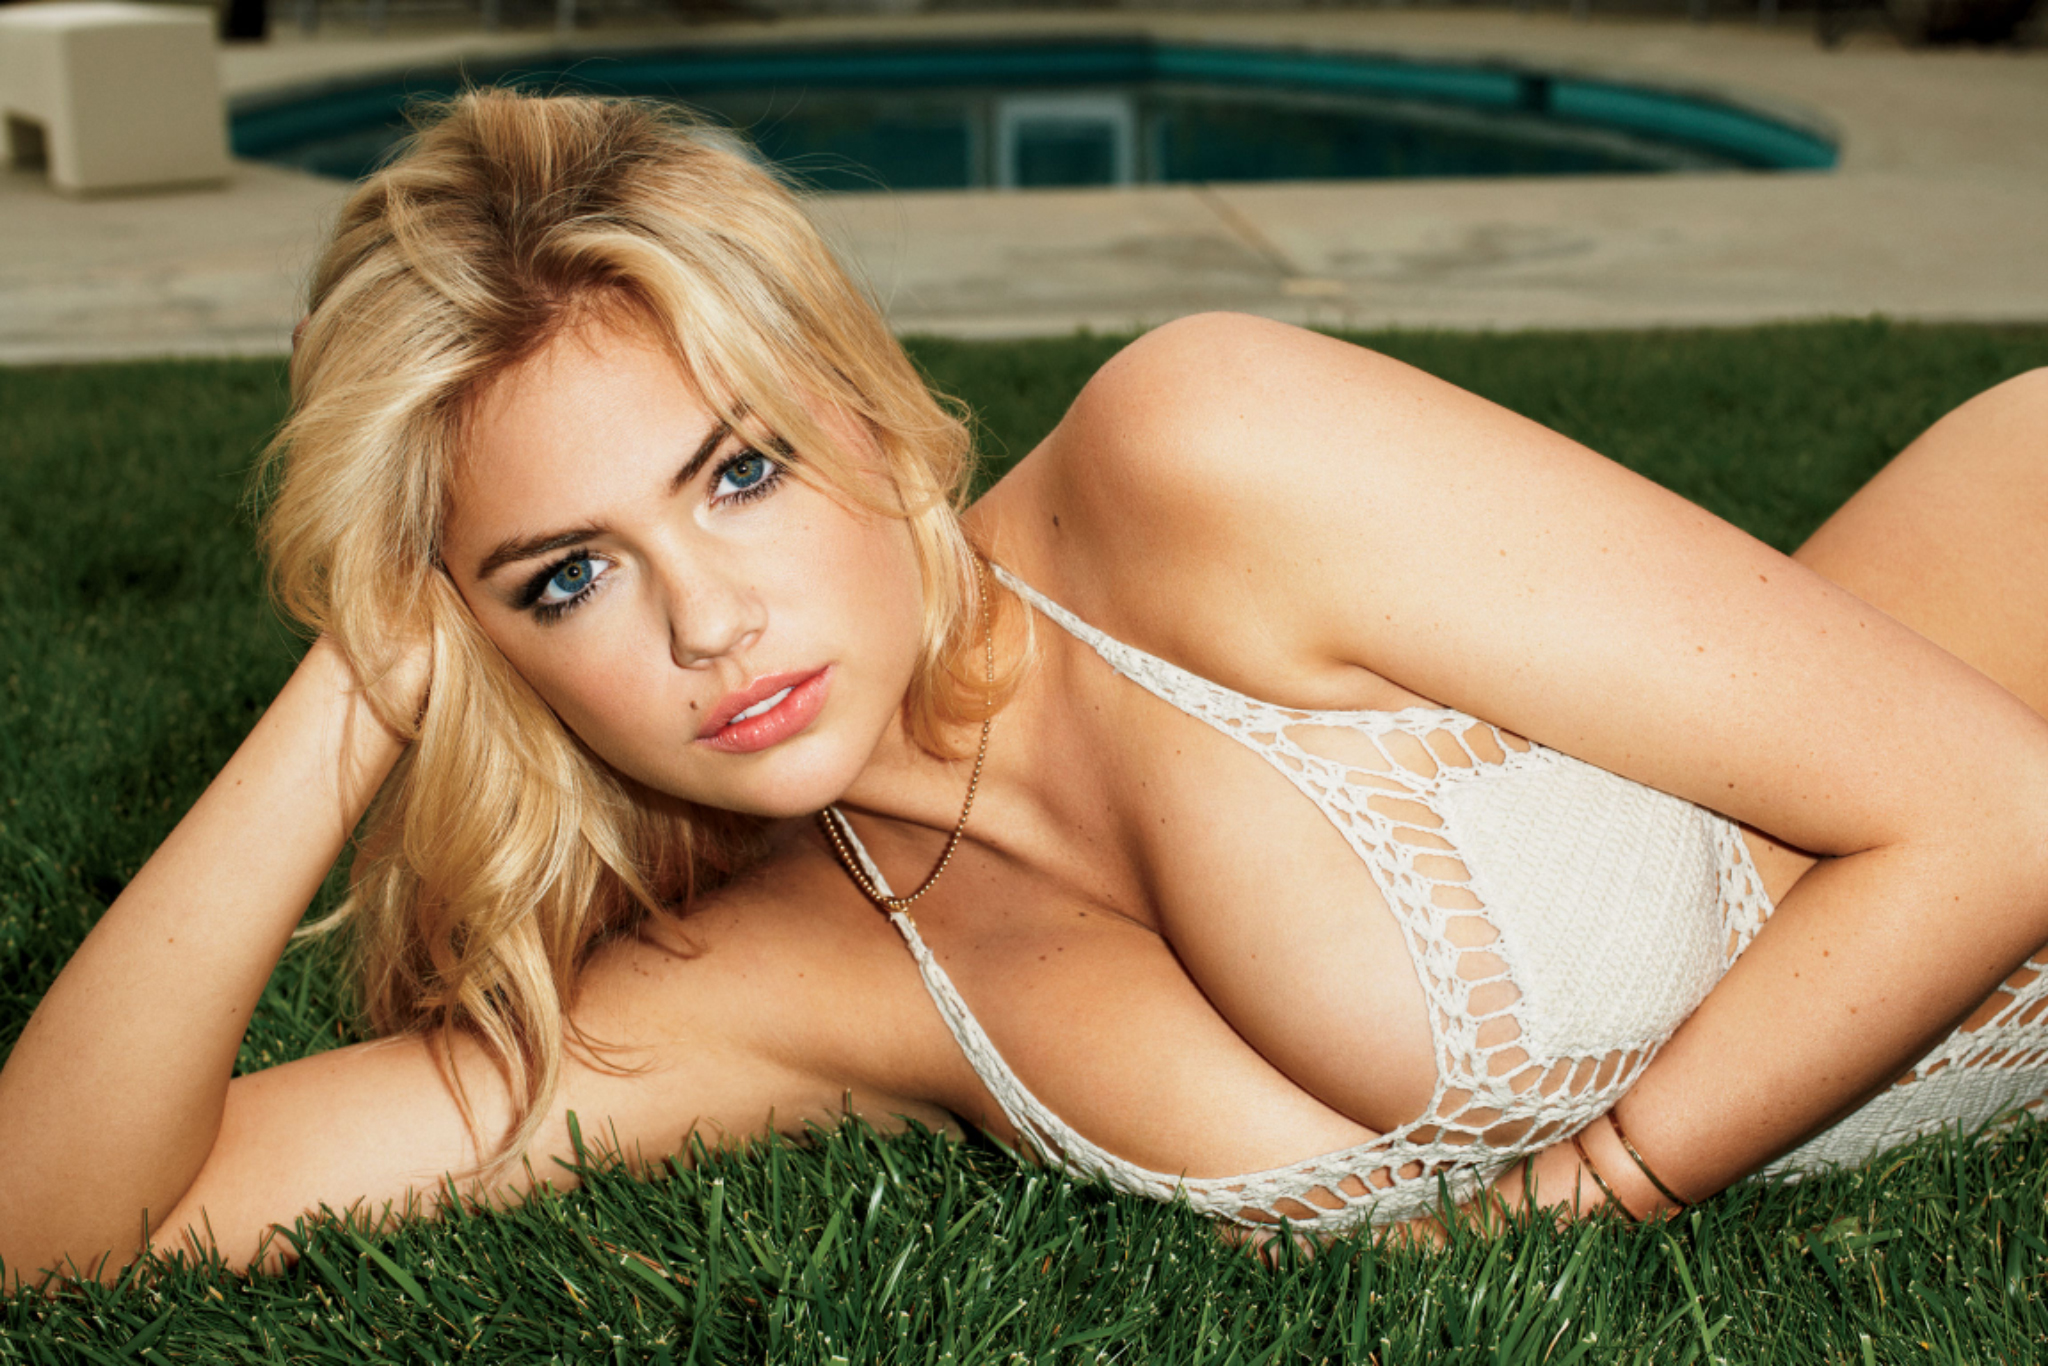 images5 fanpop image photos 31300000 GQ-July-2012-kate-upton-31310113-2048-1366 jpg